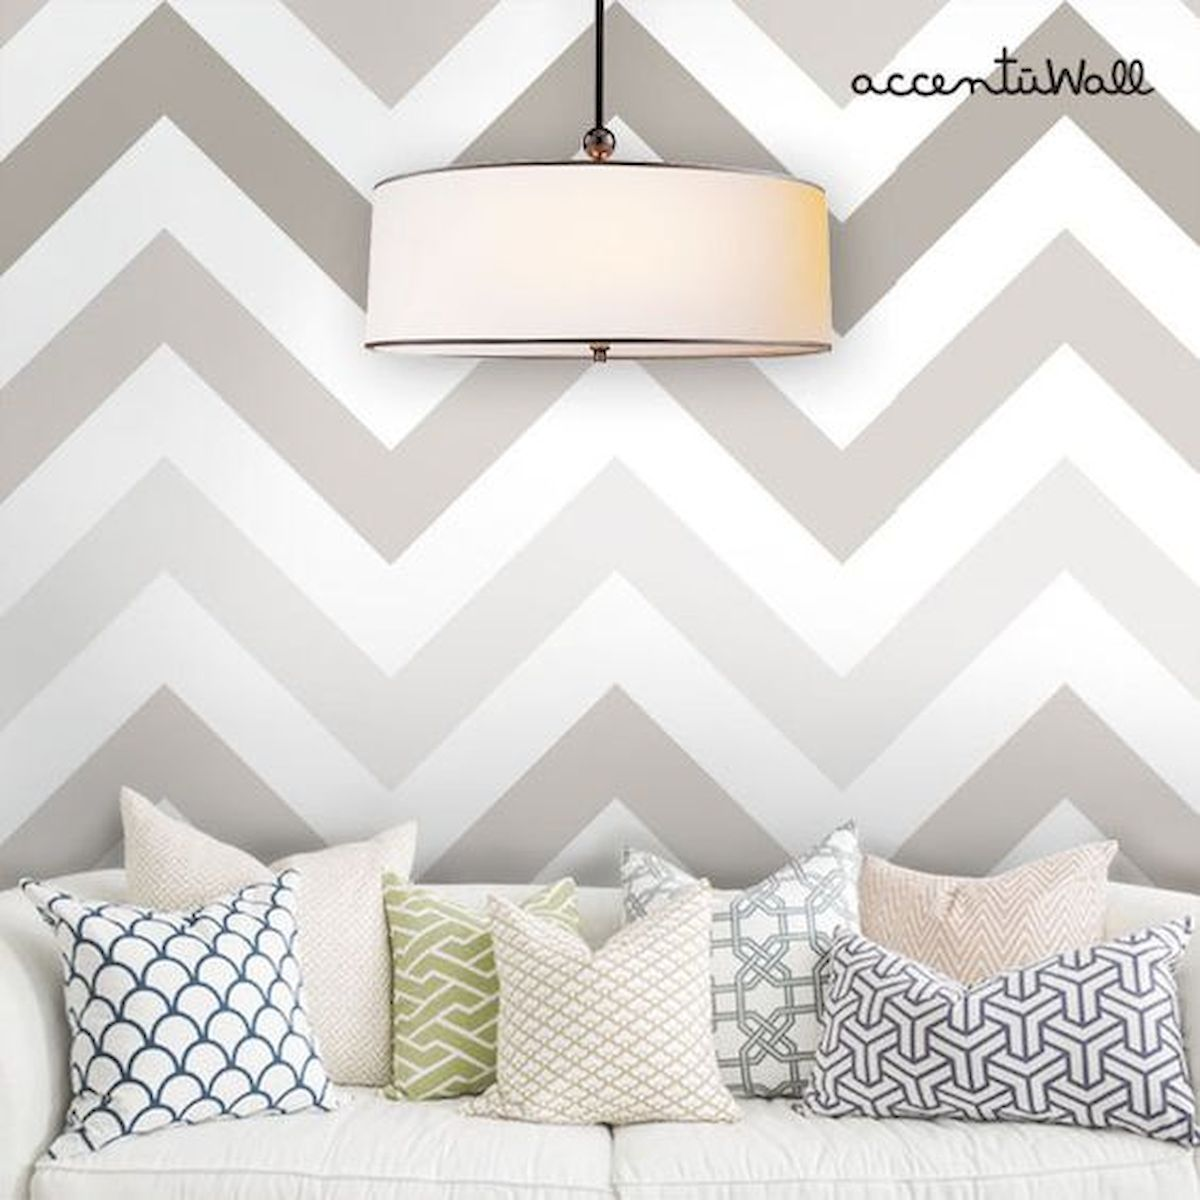 44 Easy but Awesome DIY Wall Painting Ideas to Decorate Your Home (9)